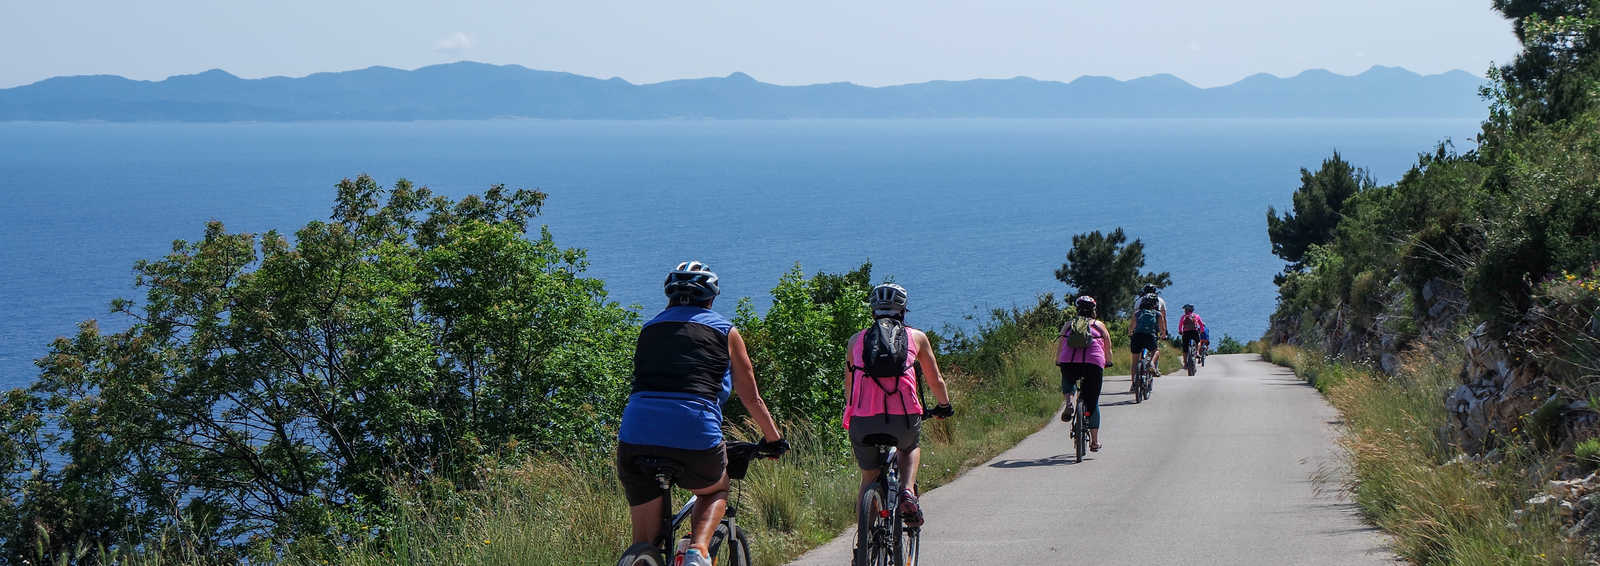 Cycling towards Zuljana, Croatia